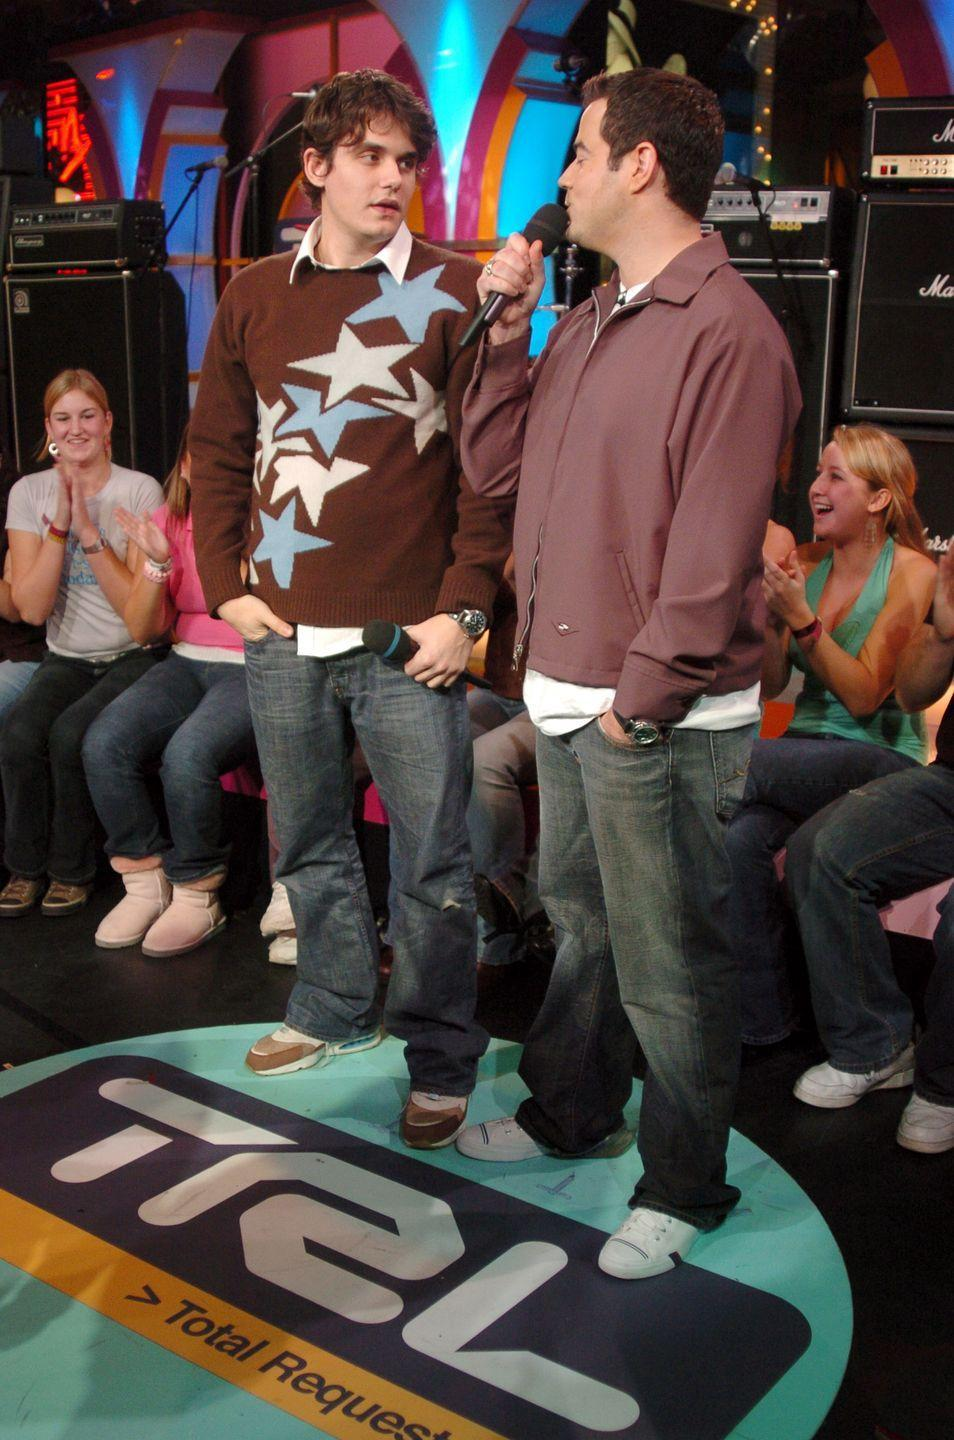 <p>John Mayer's outfit is so unfortunate, he's making Carson Daly's baggy wardrobe look good. Sorry but it's true!</p>